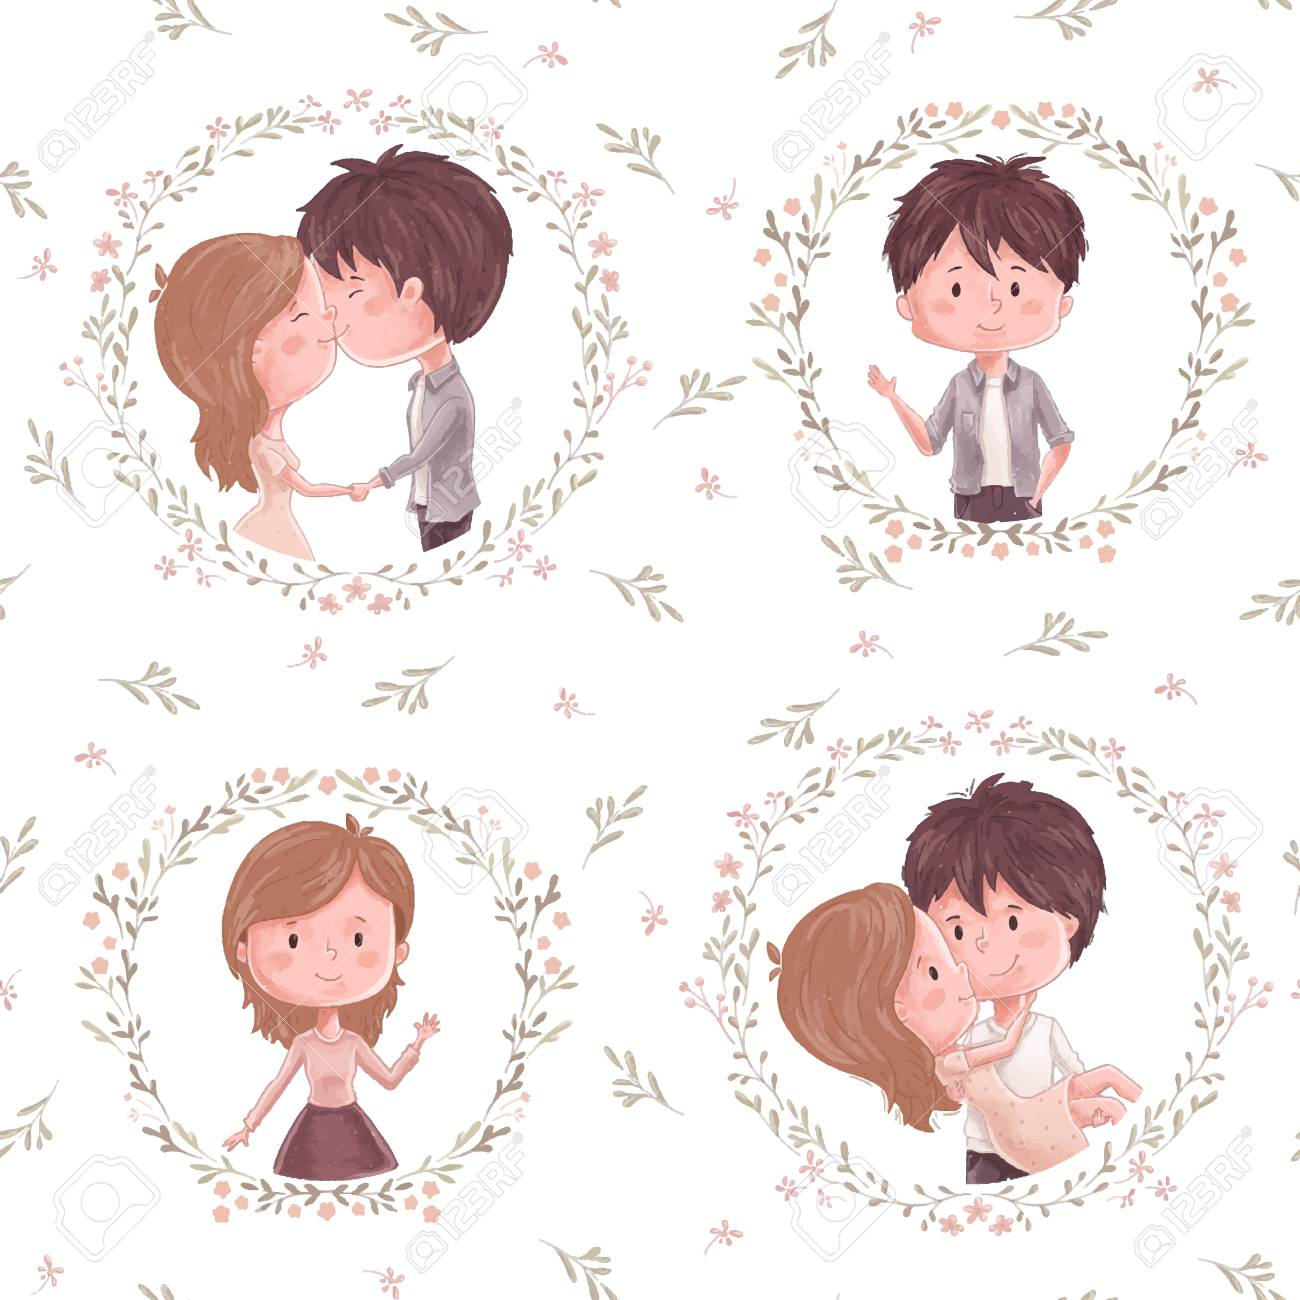 cute couple pattern. boy and girl, flower and wreath. ornament